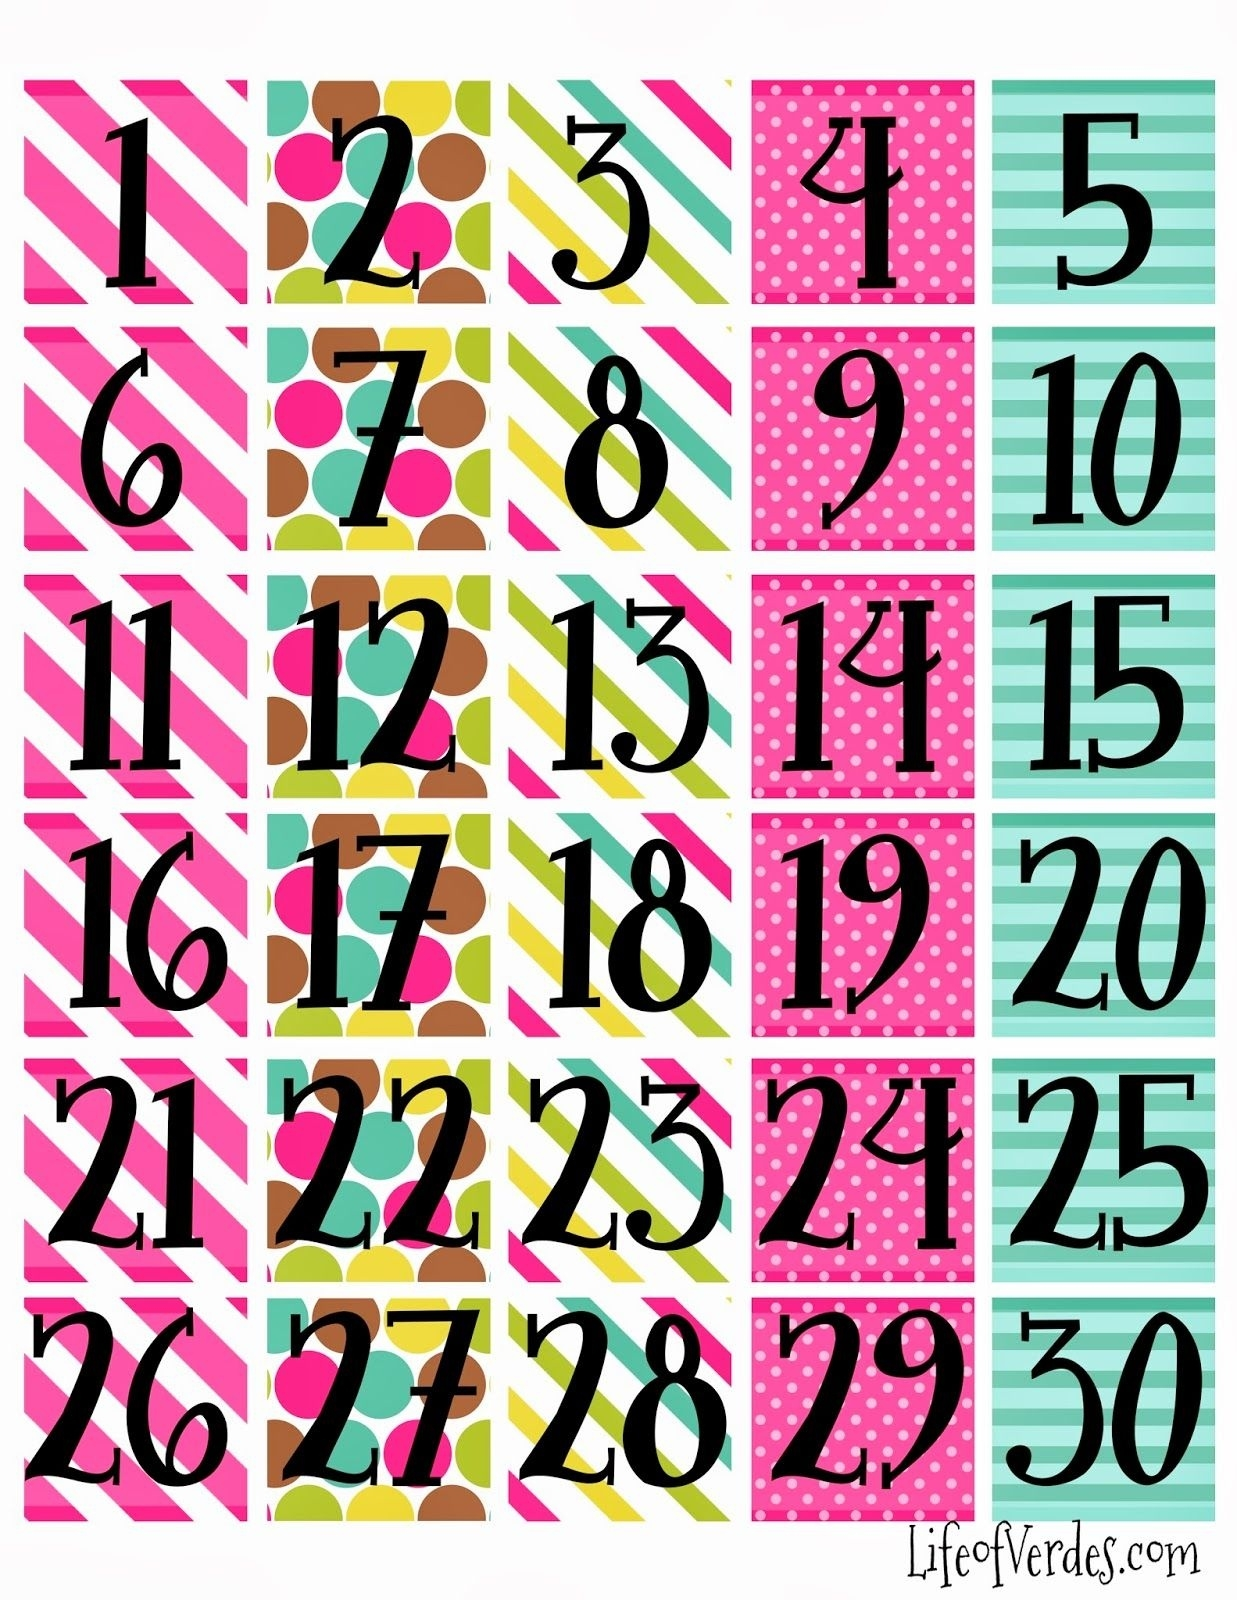 Free+Printable+Calendar+Numbers | Household Info | Pinterest  Printable Calendar Pieces To 31